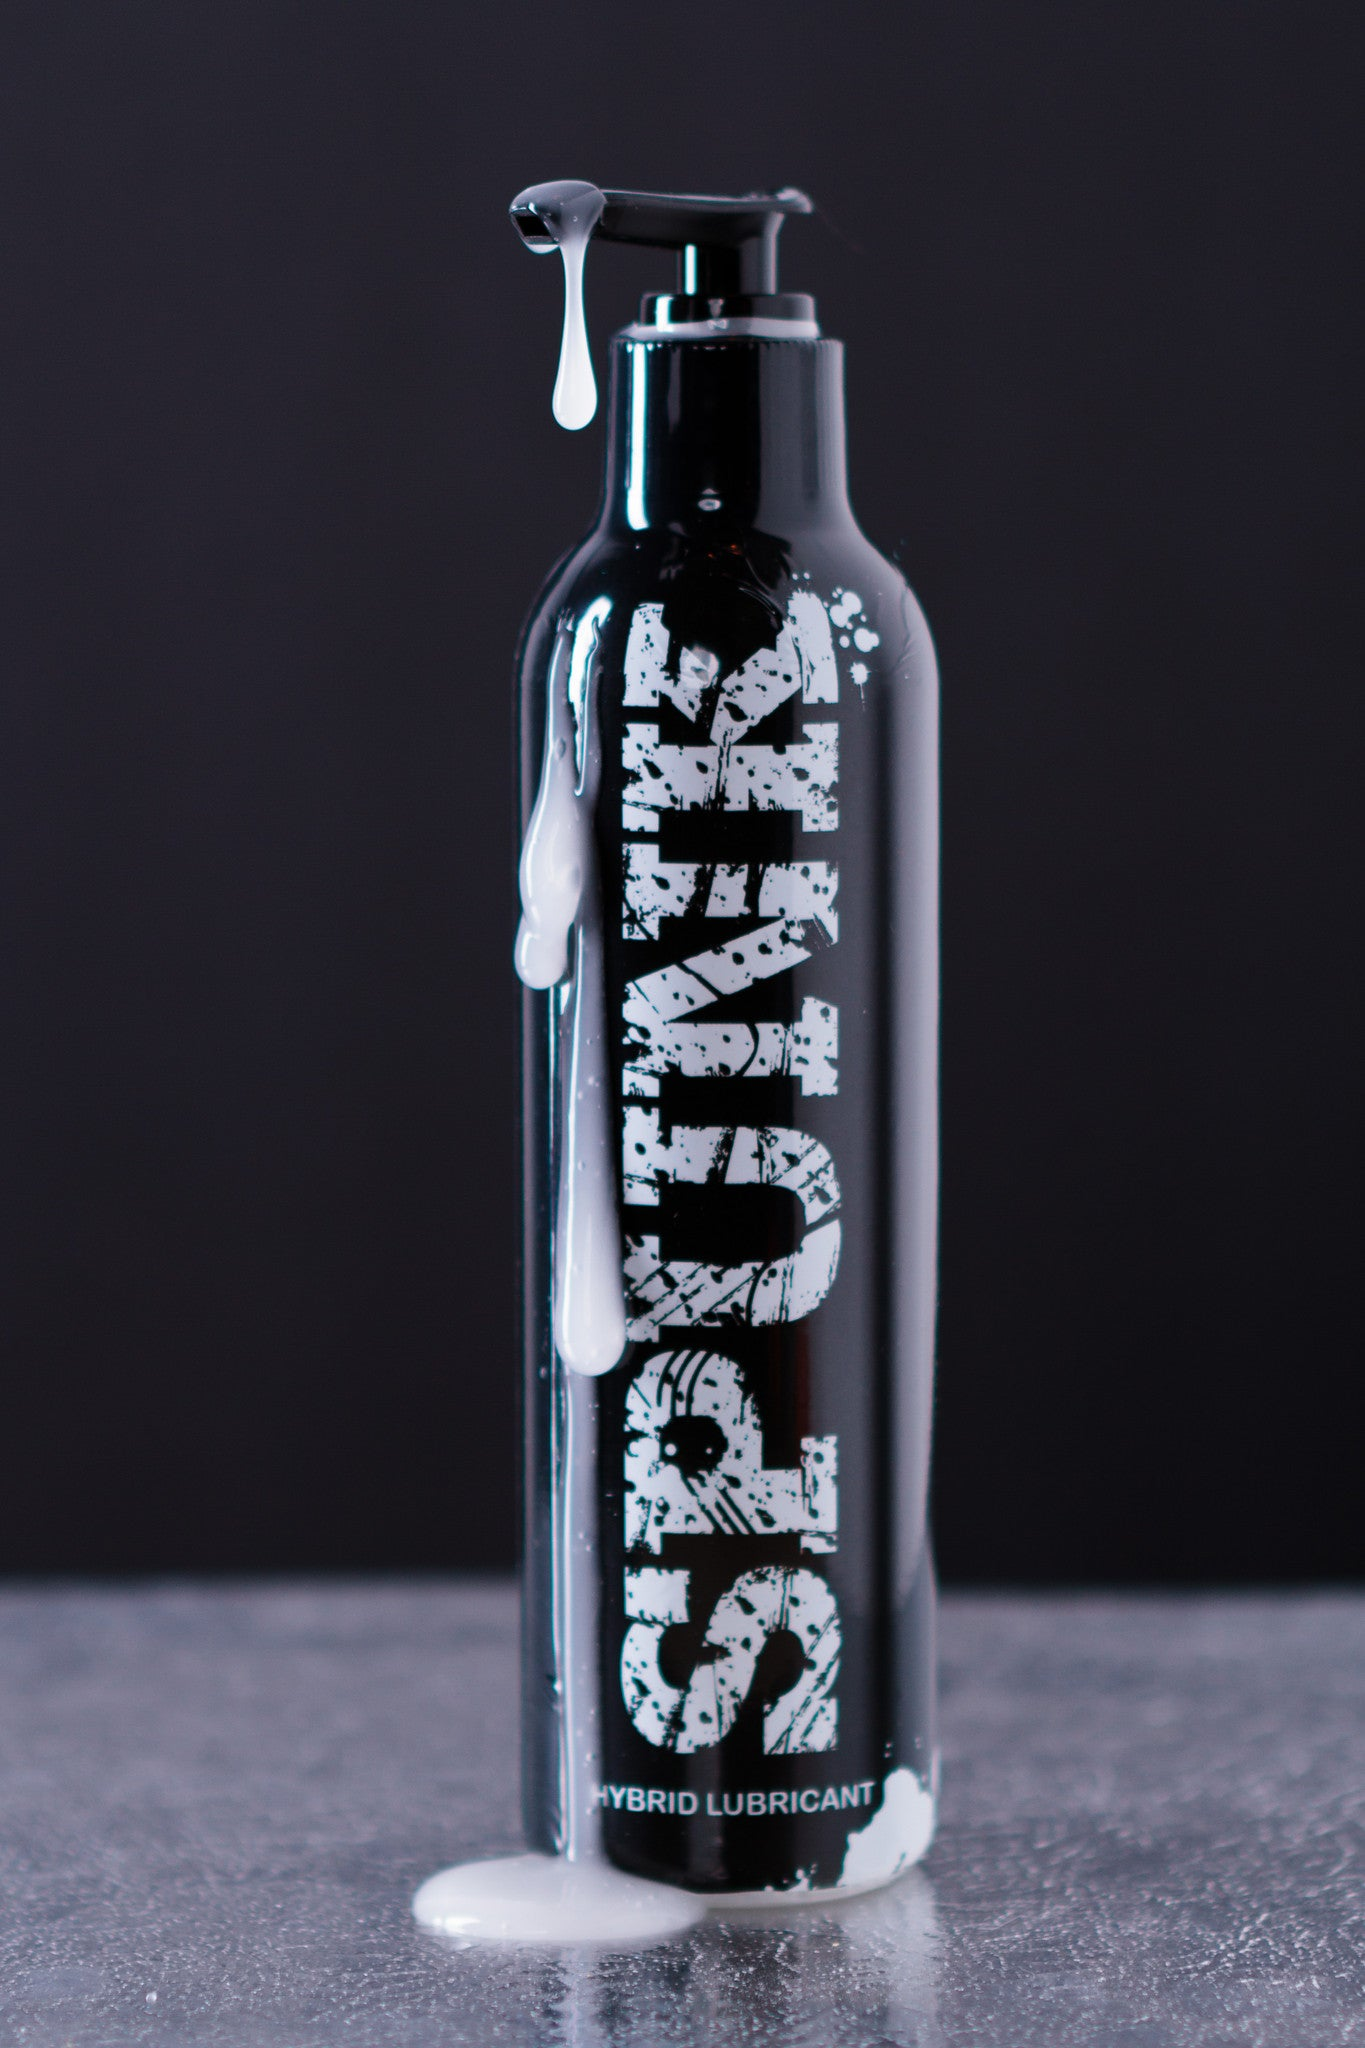 Spunk Hybrid Lubricant (8oz) - Looks and Feels like CUM!